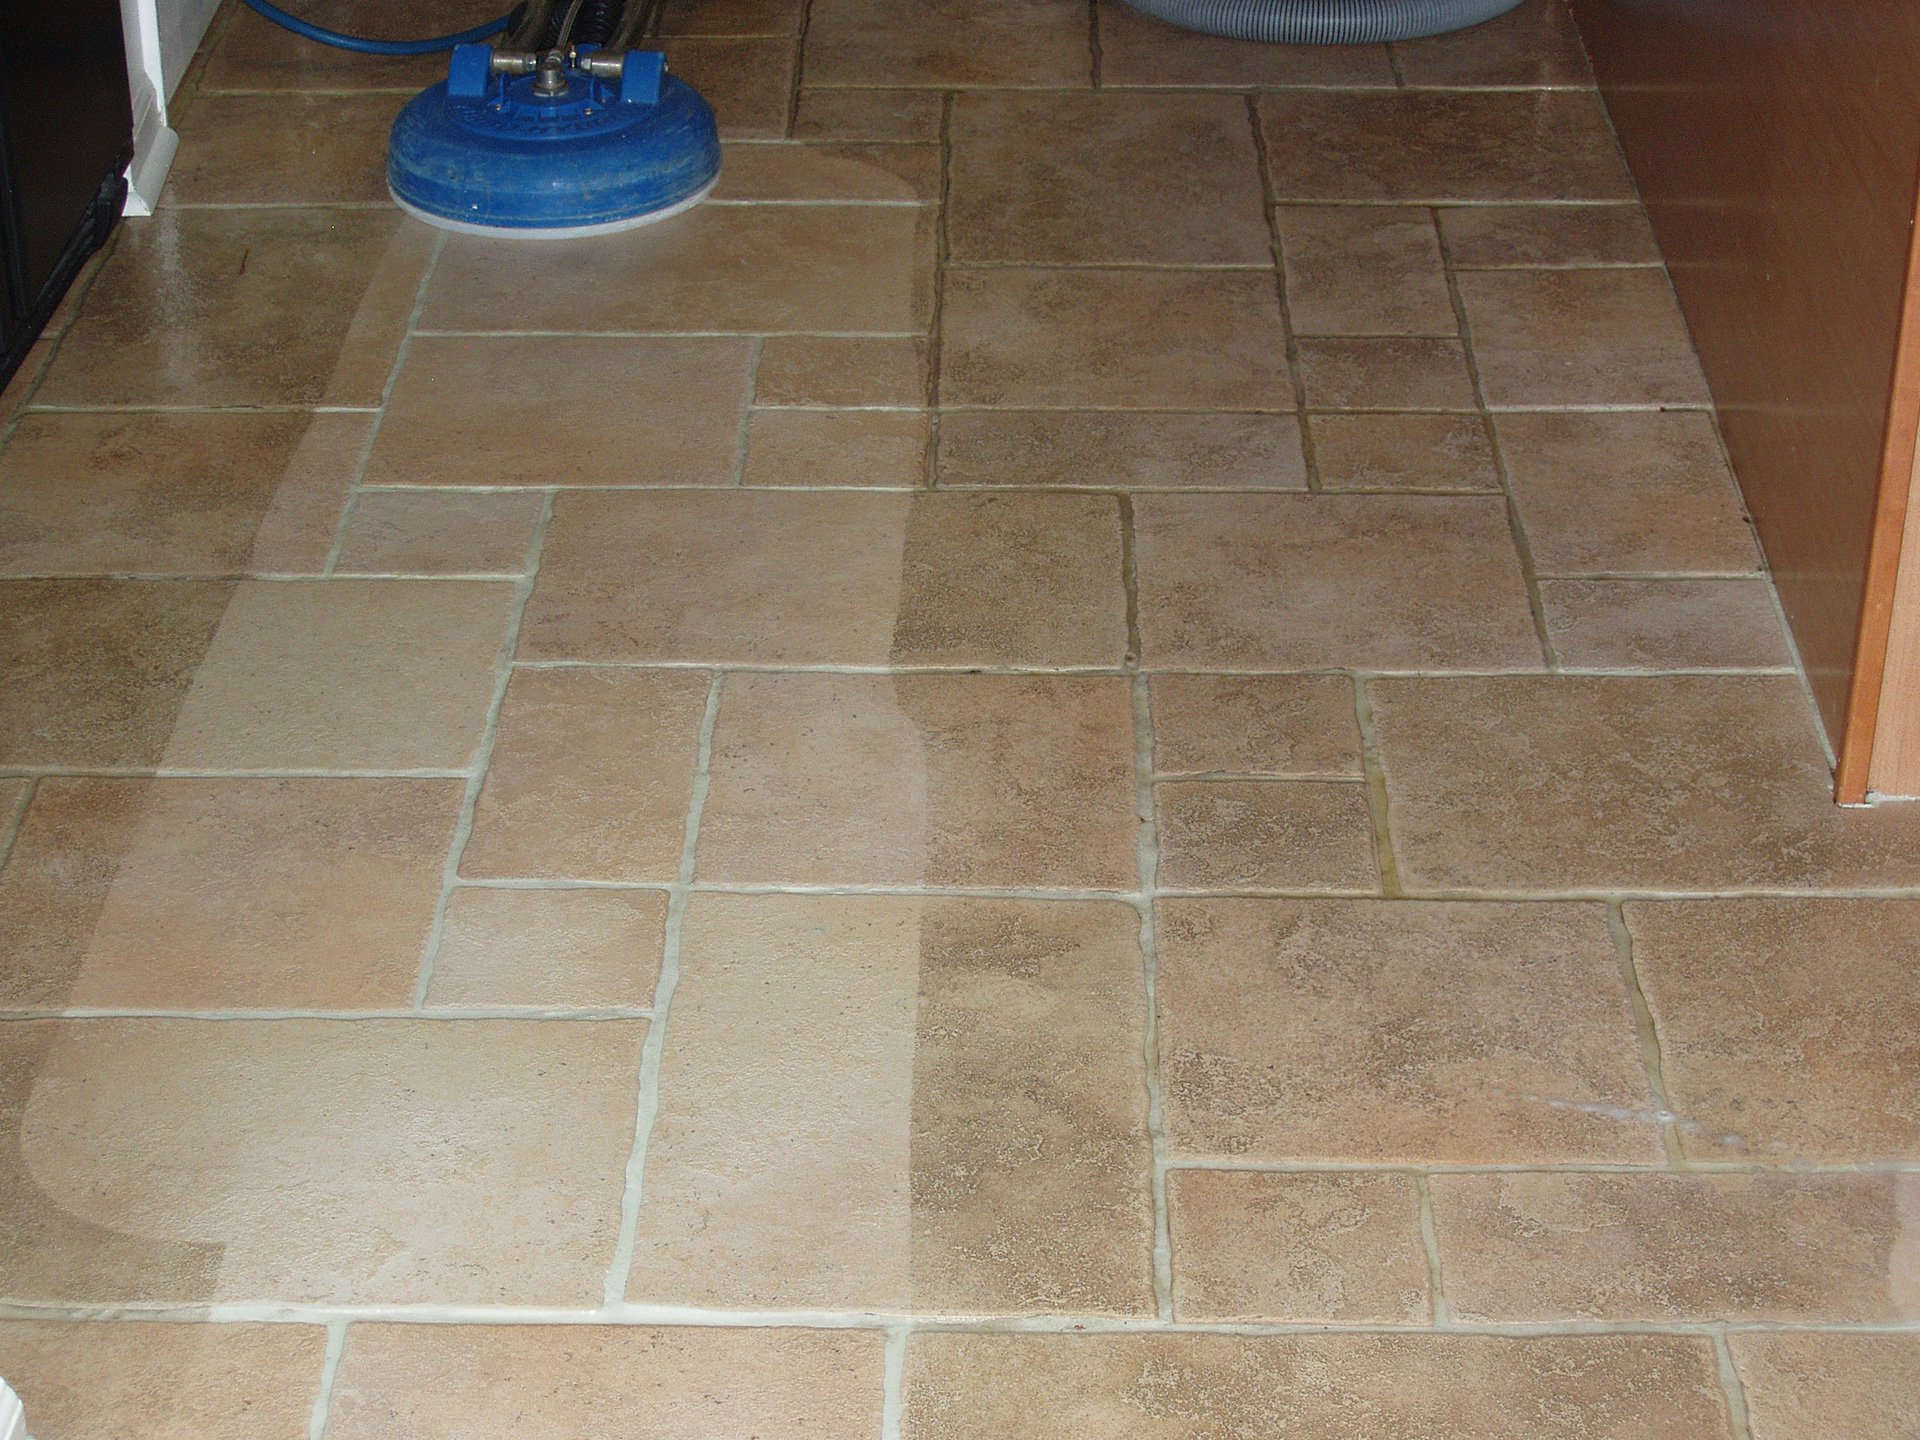 Tile Cleaning In College Station Amp Bryan Tx Aggieland